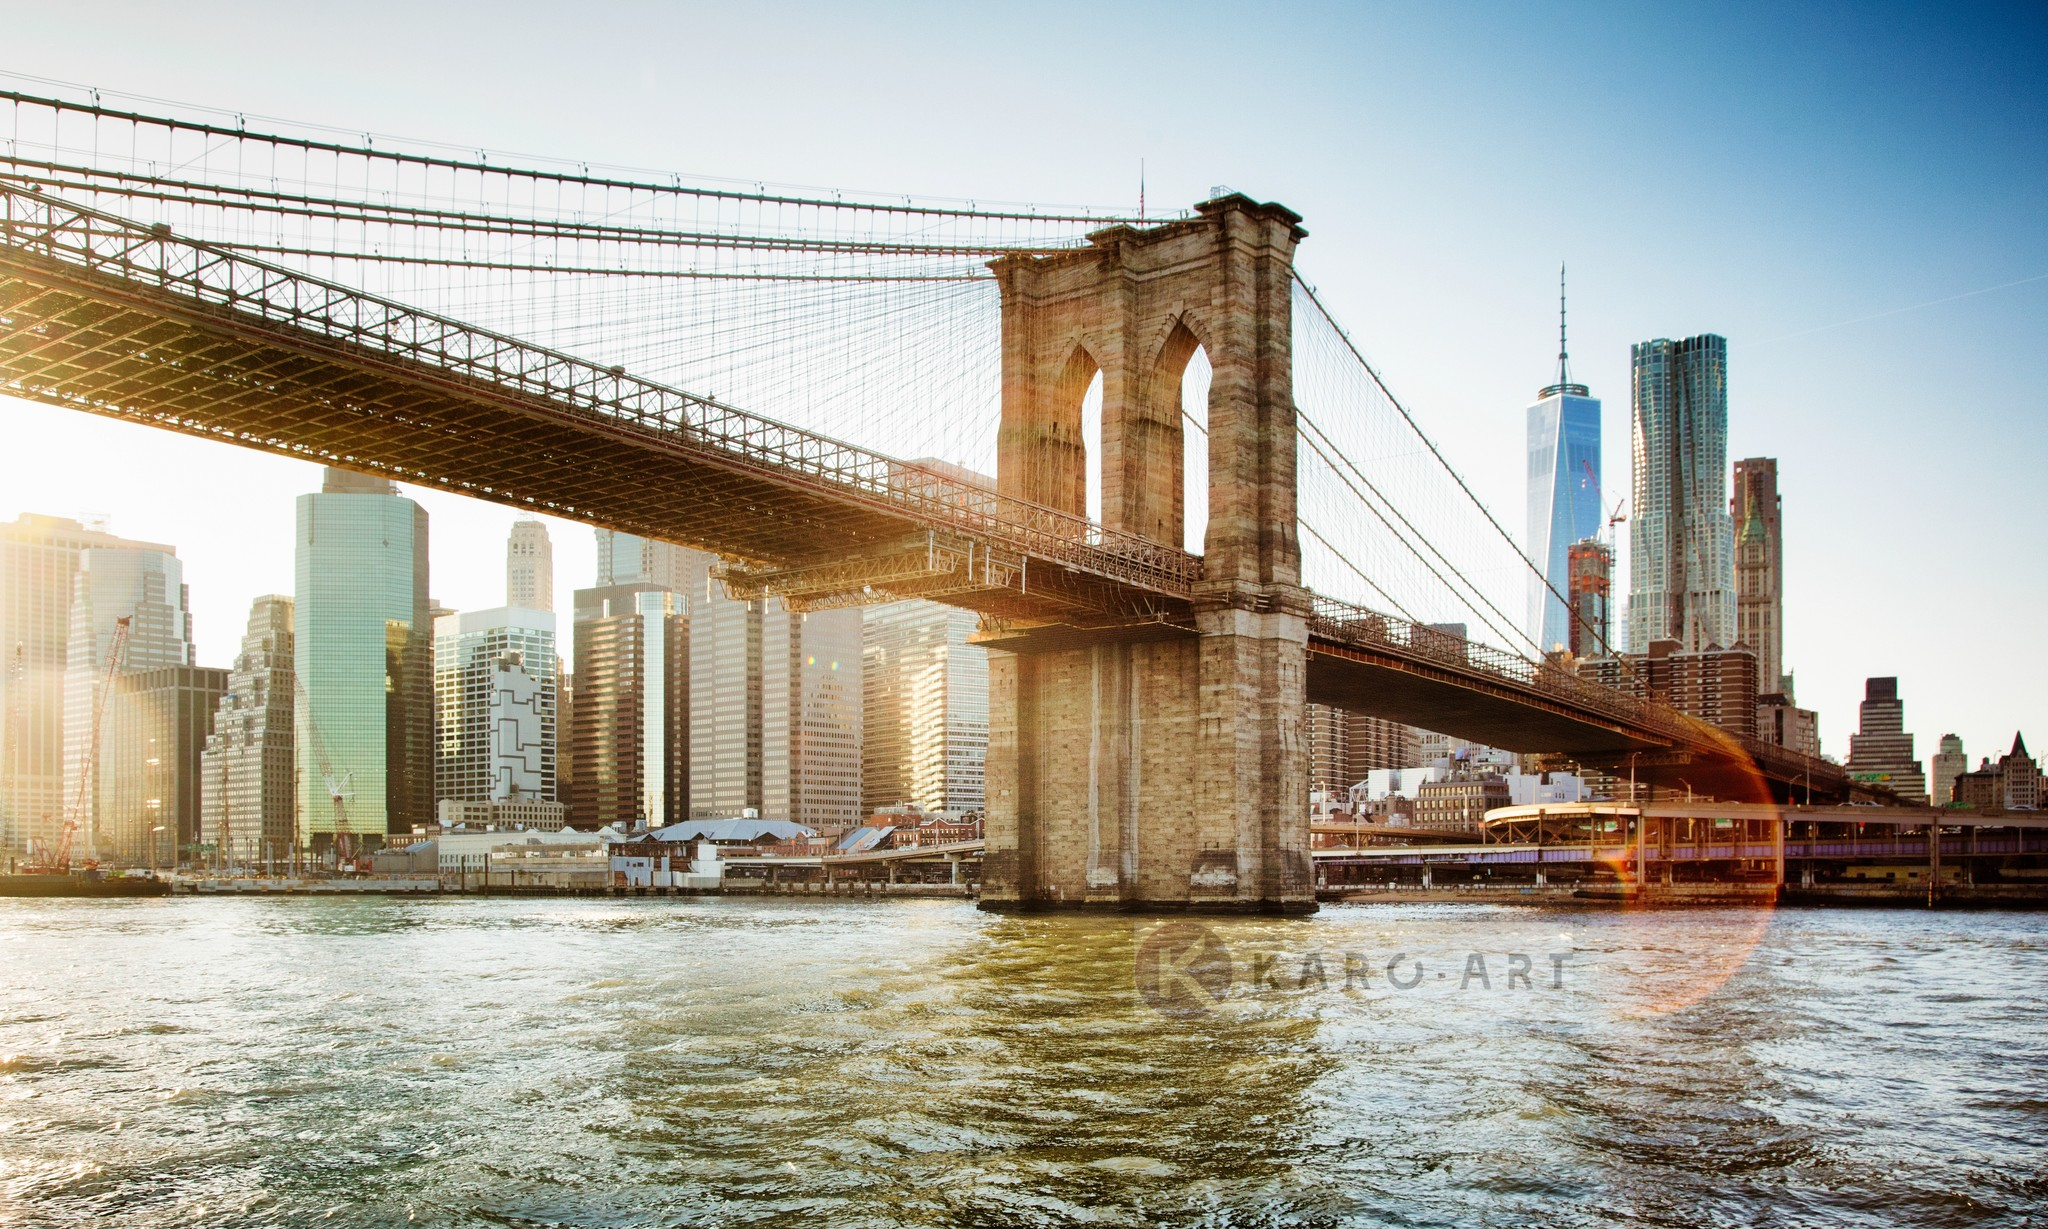 Afbeelding op acrylglas - Brooklyn Bridge, New York